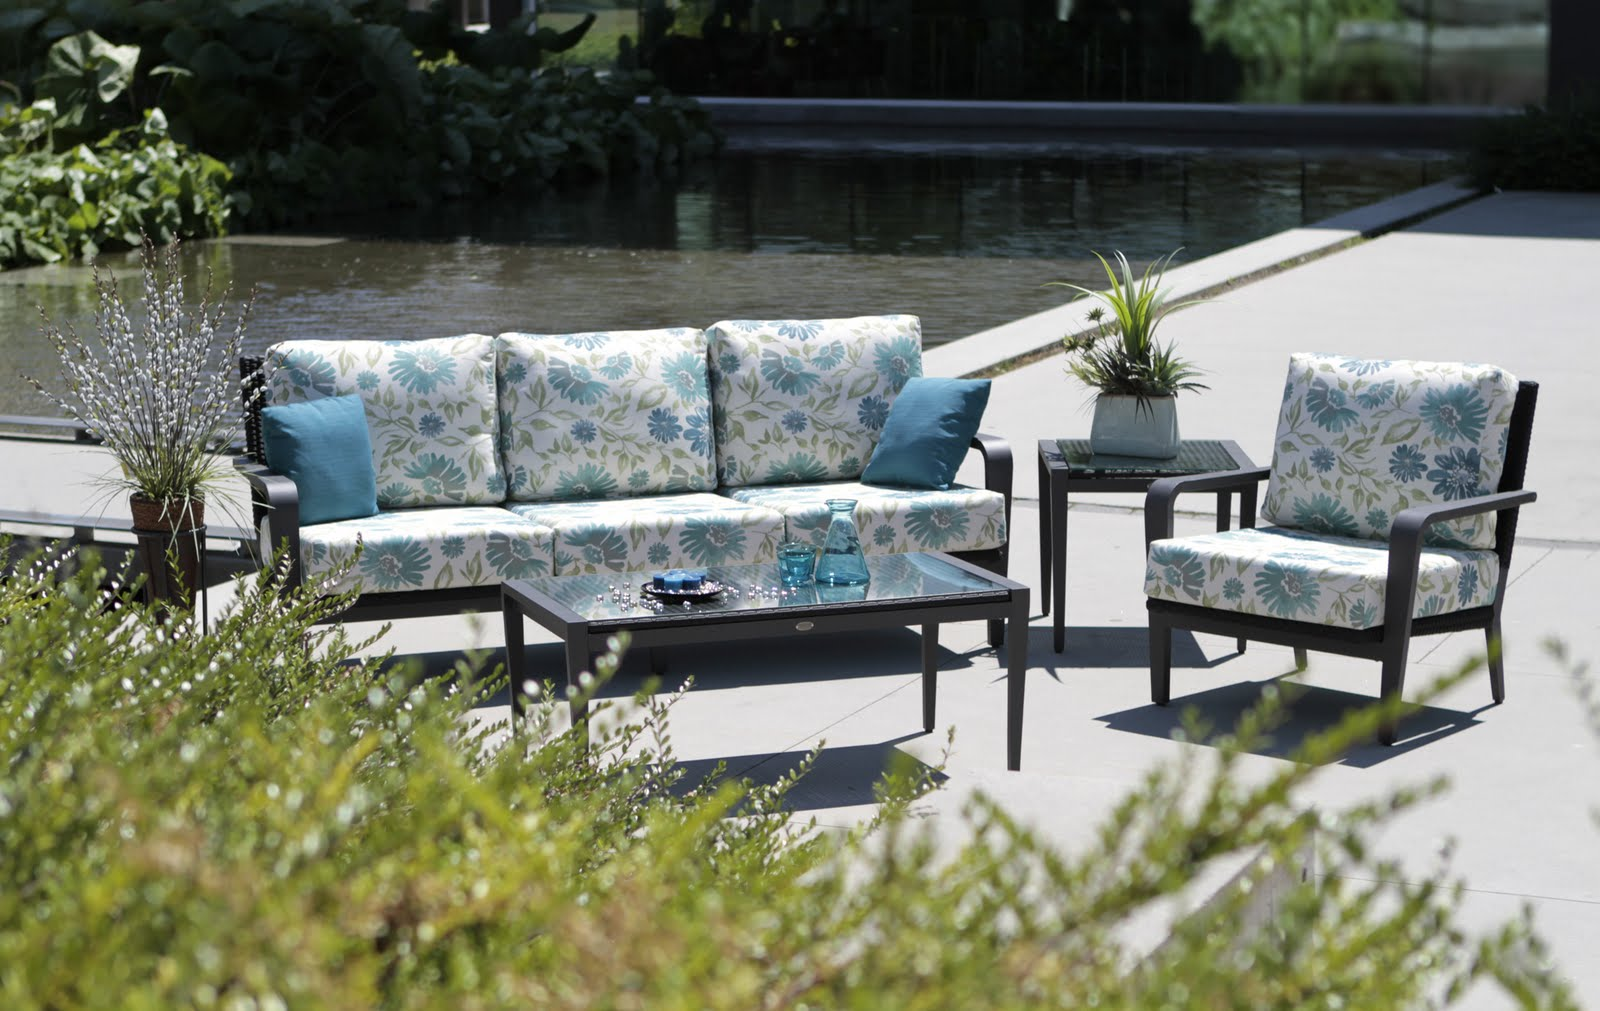 Eberly collard pr casual market sneak peek ratana Ratana outdoor furniture